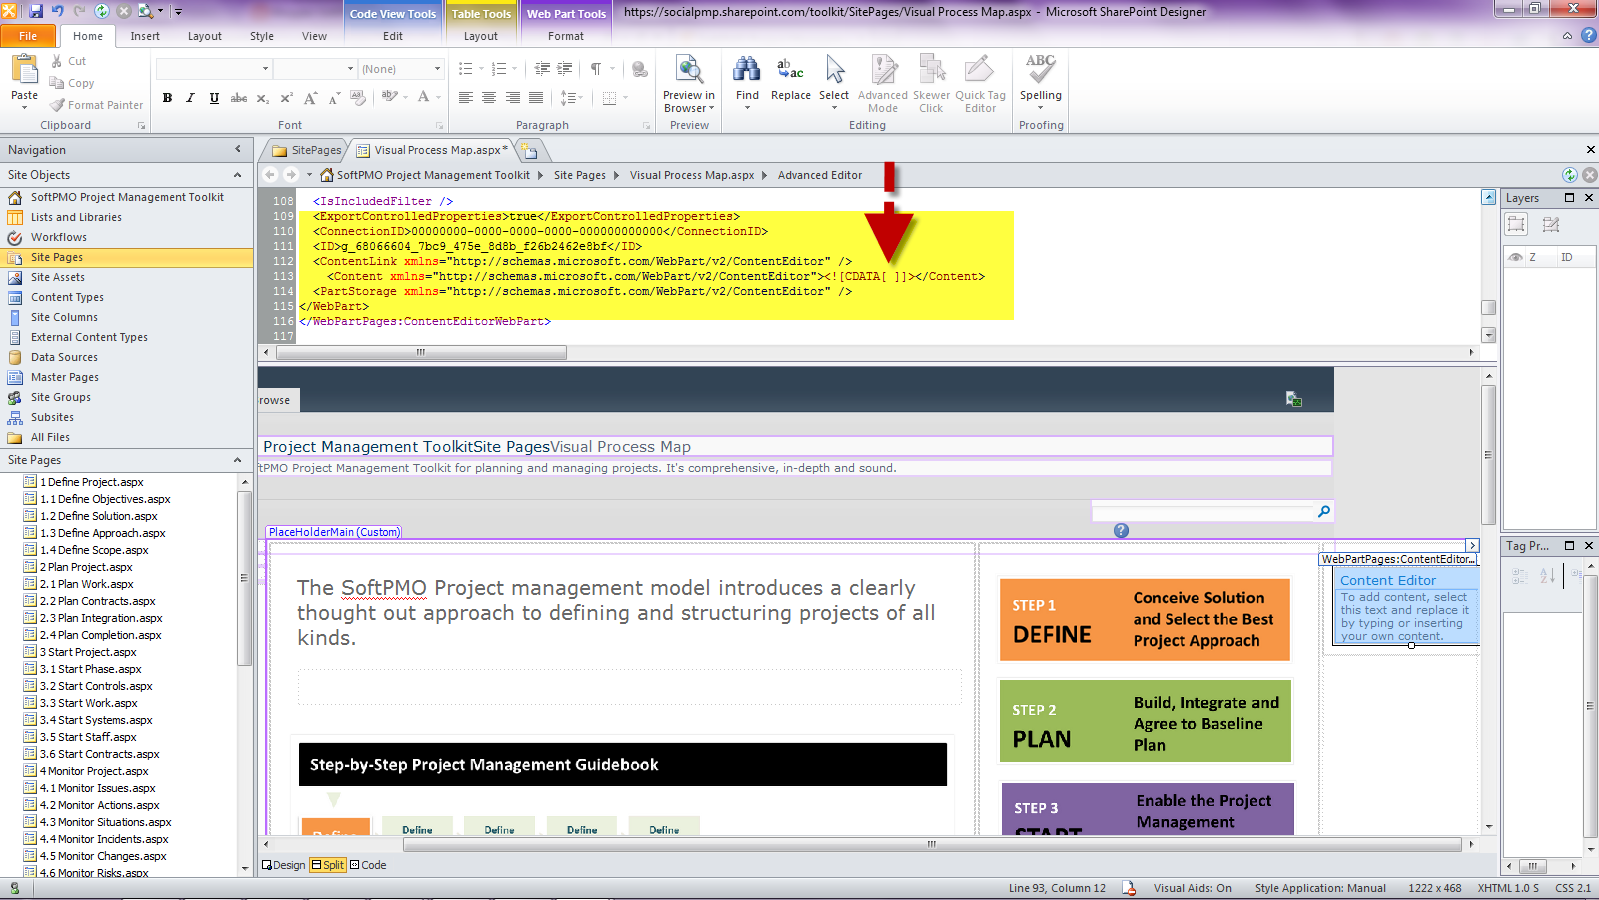 SoftPMO™ Solutions: Add a Twitter widget to SharePoint 2010